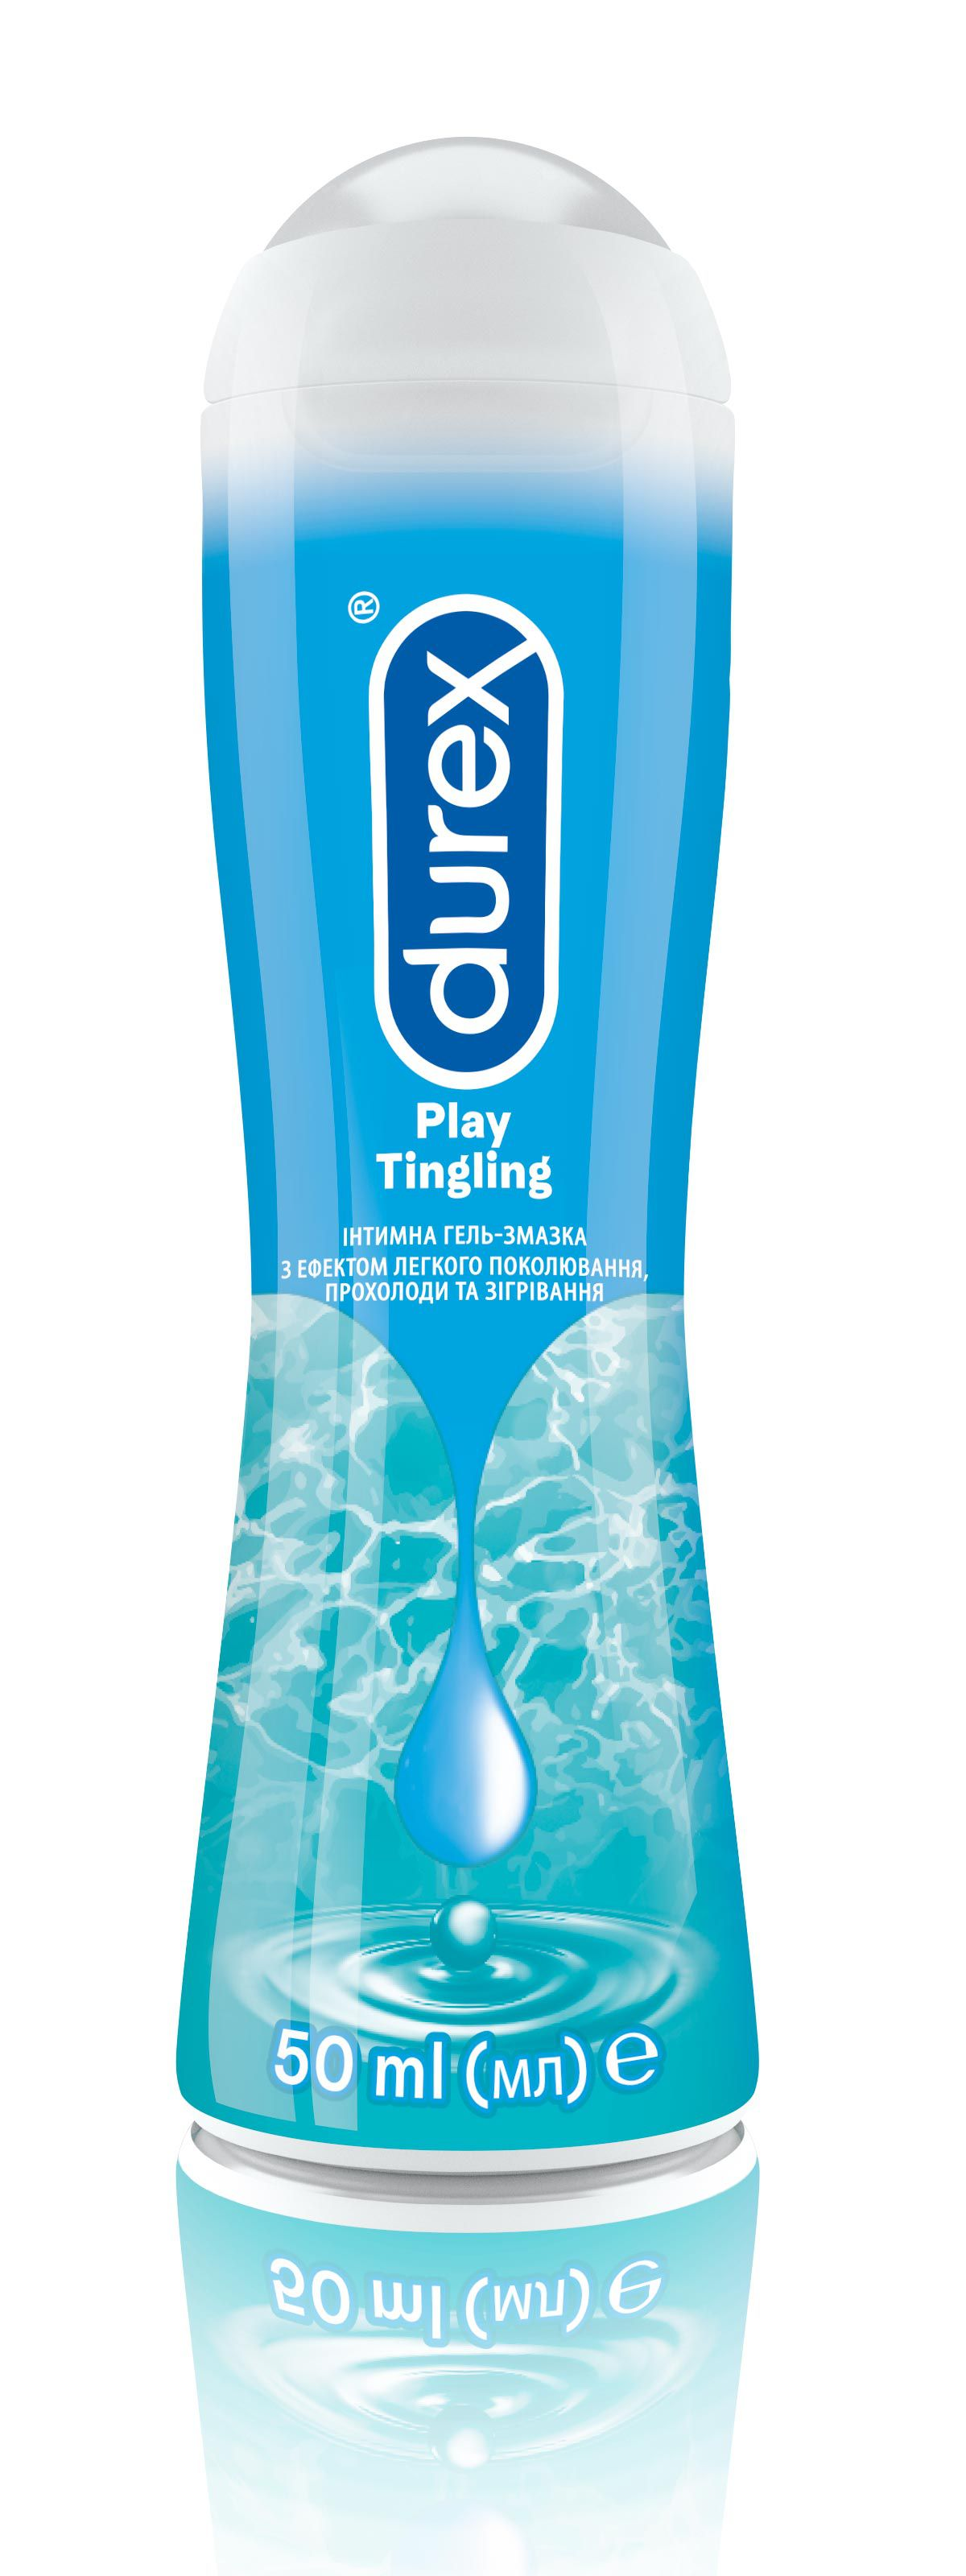 Intymna hel zmazka Durex Play Tingle, 50ml